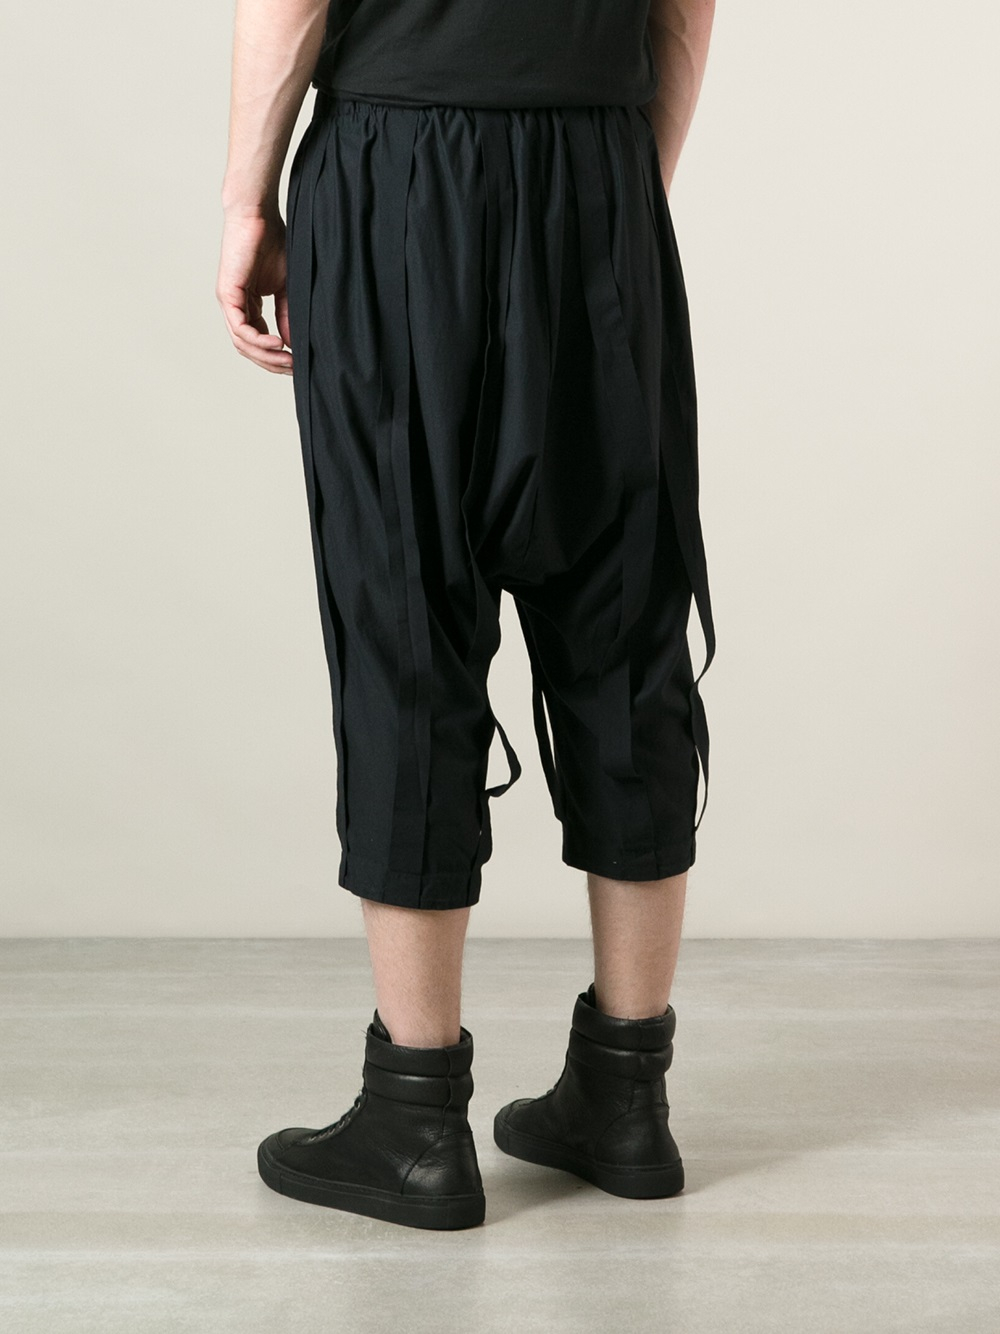 Individual sentiments Loose Fit Long Shorts in Black for ...